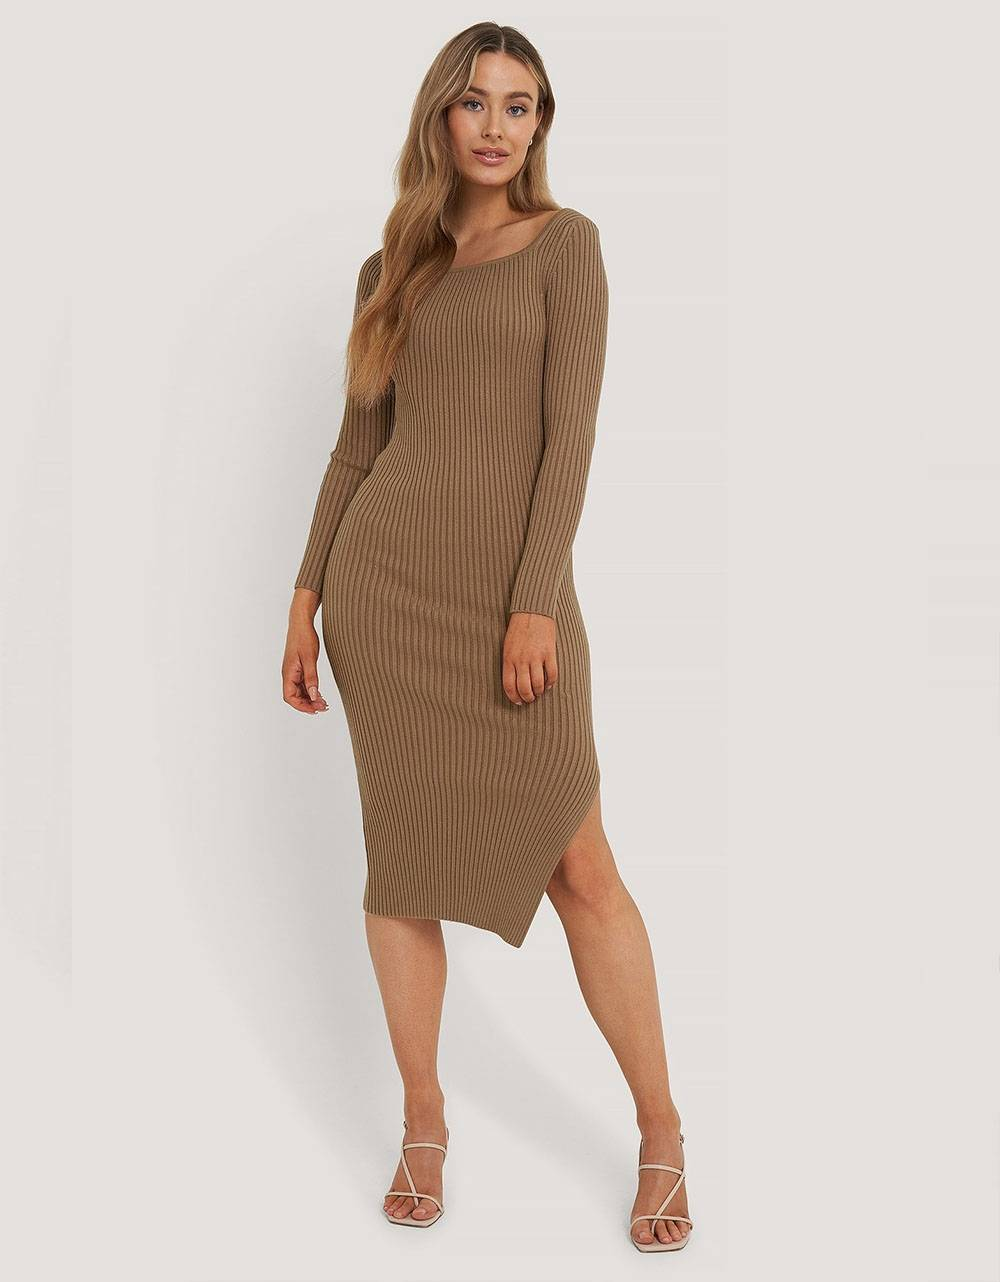 NA-KD square neck side slit midi dress - nougat NA-KD Dress 72,95 €